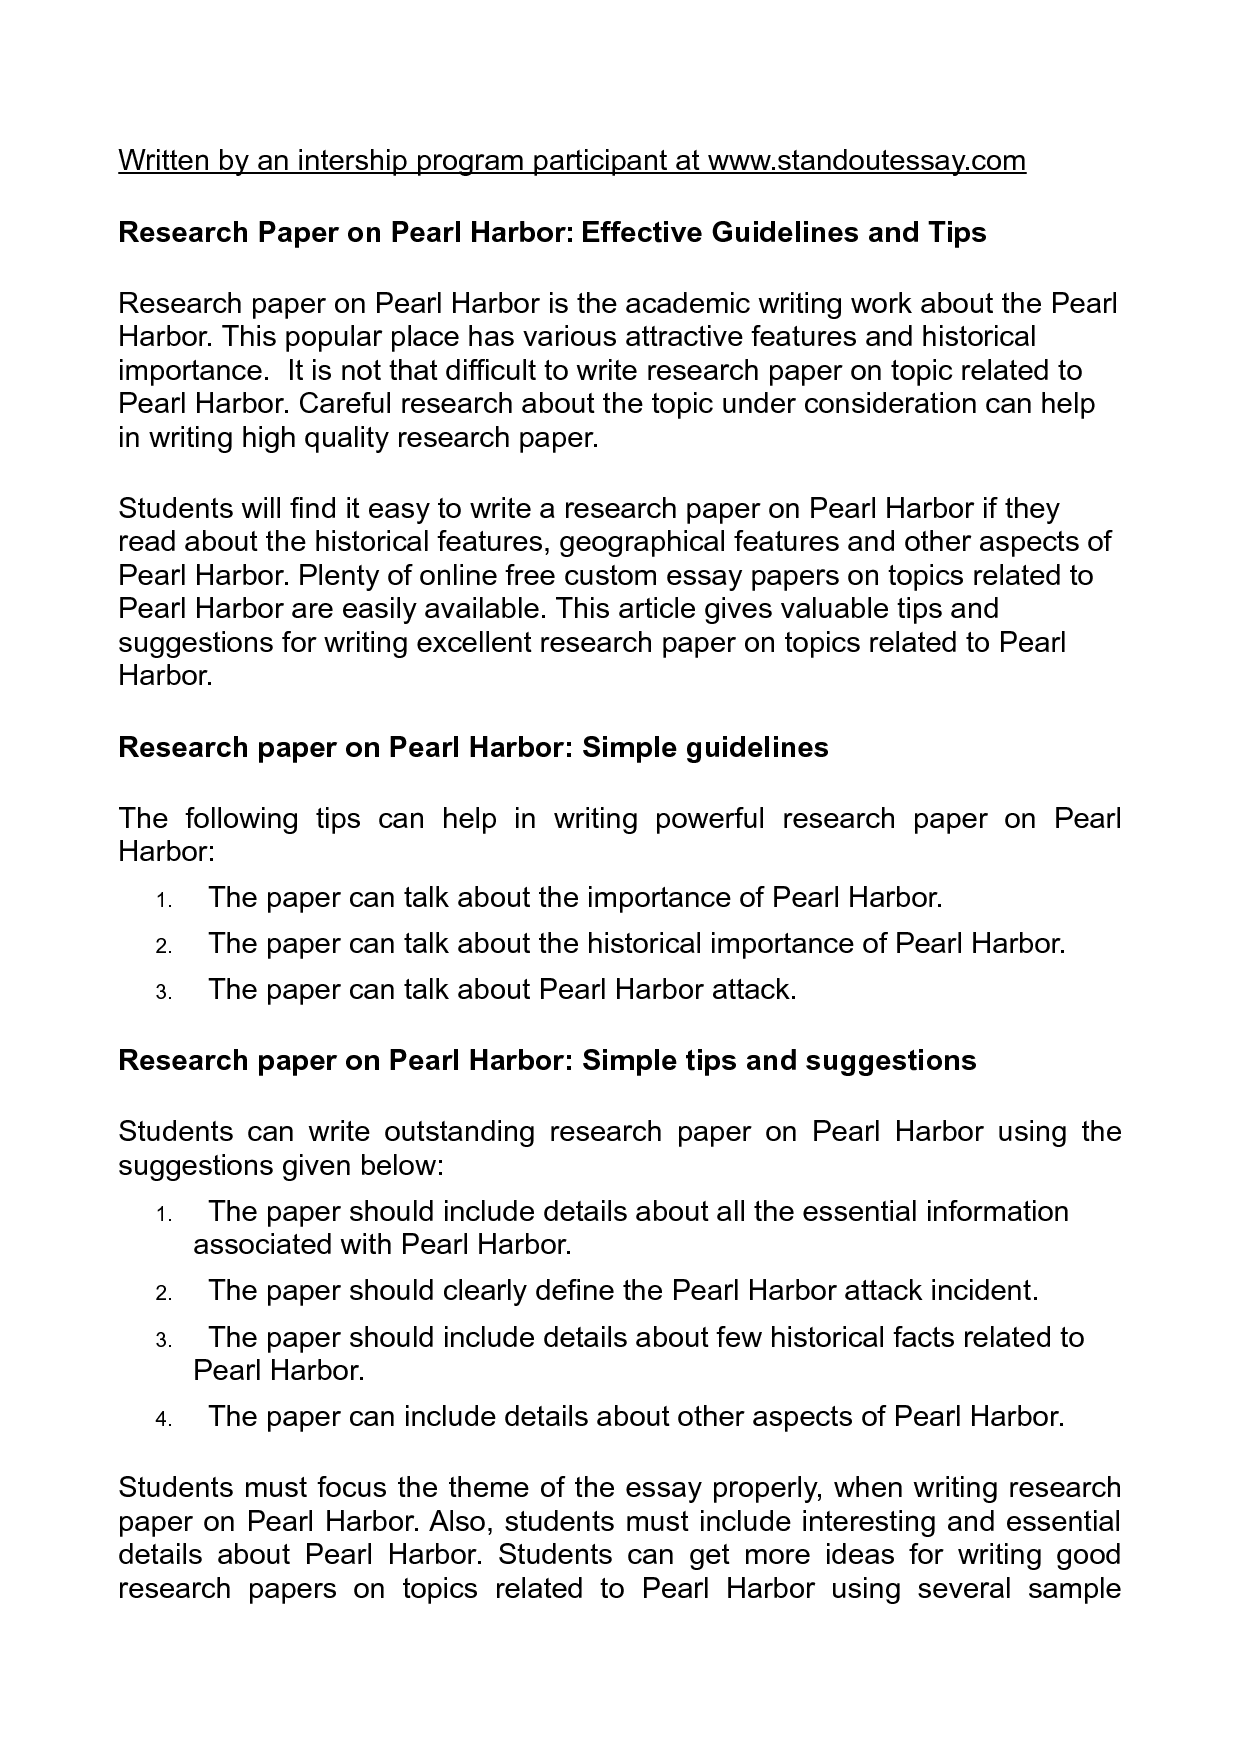 Pearl harbor research paper research paper on pearl harbor